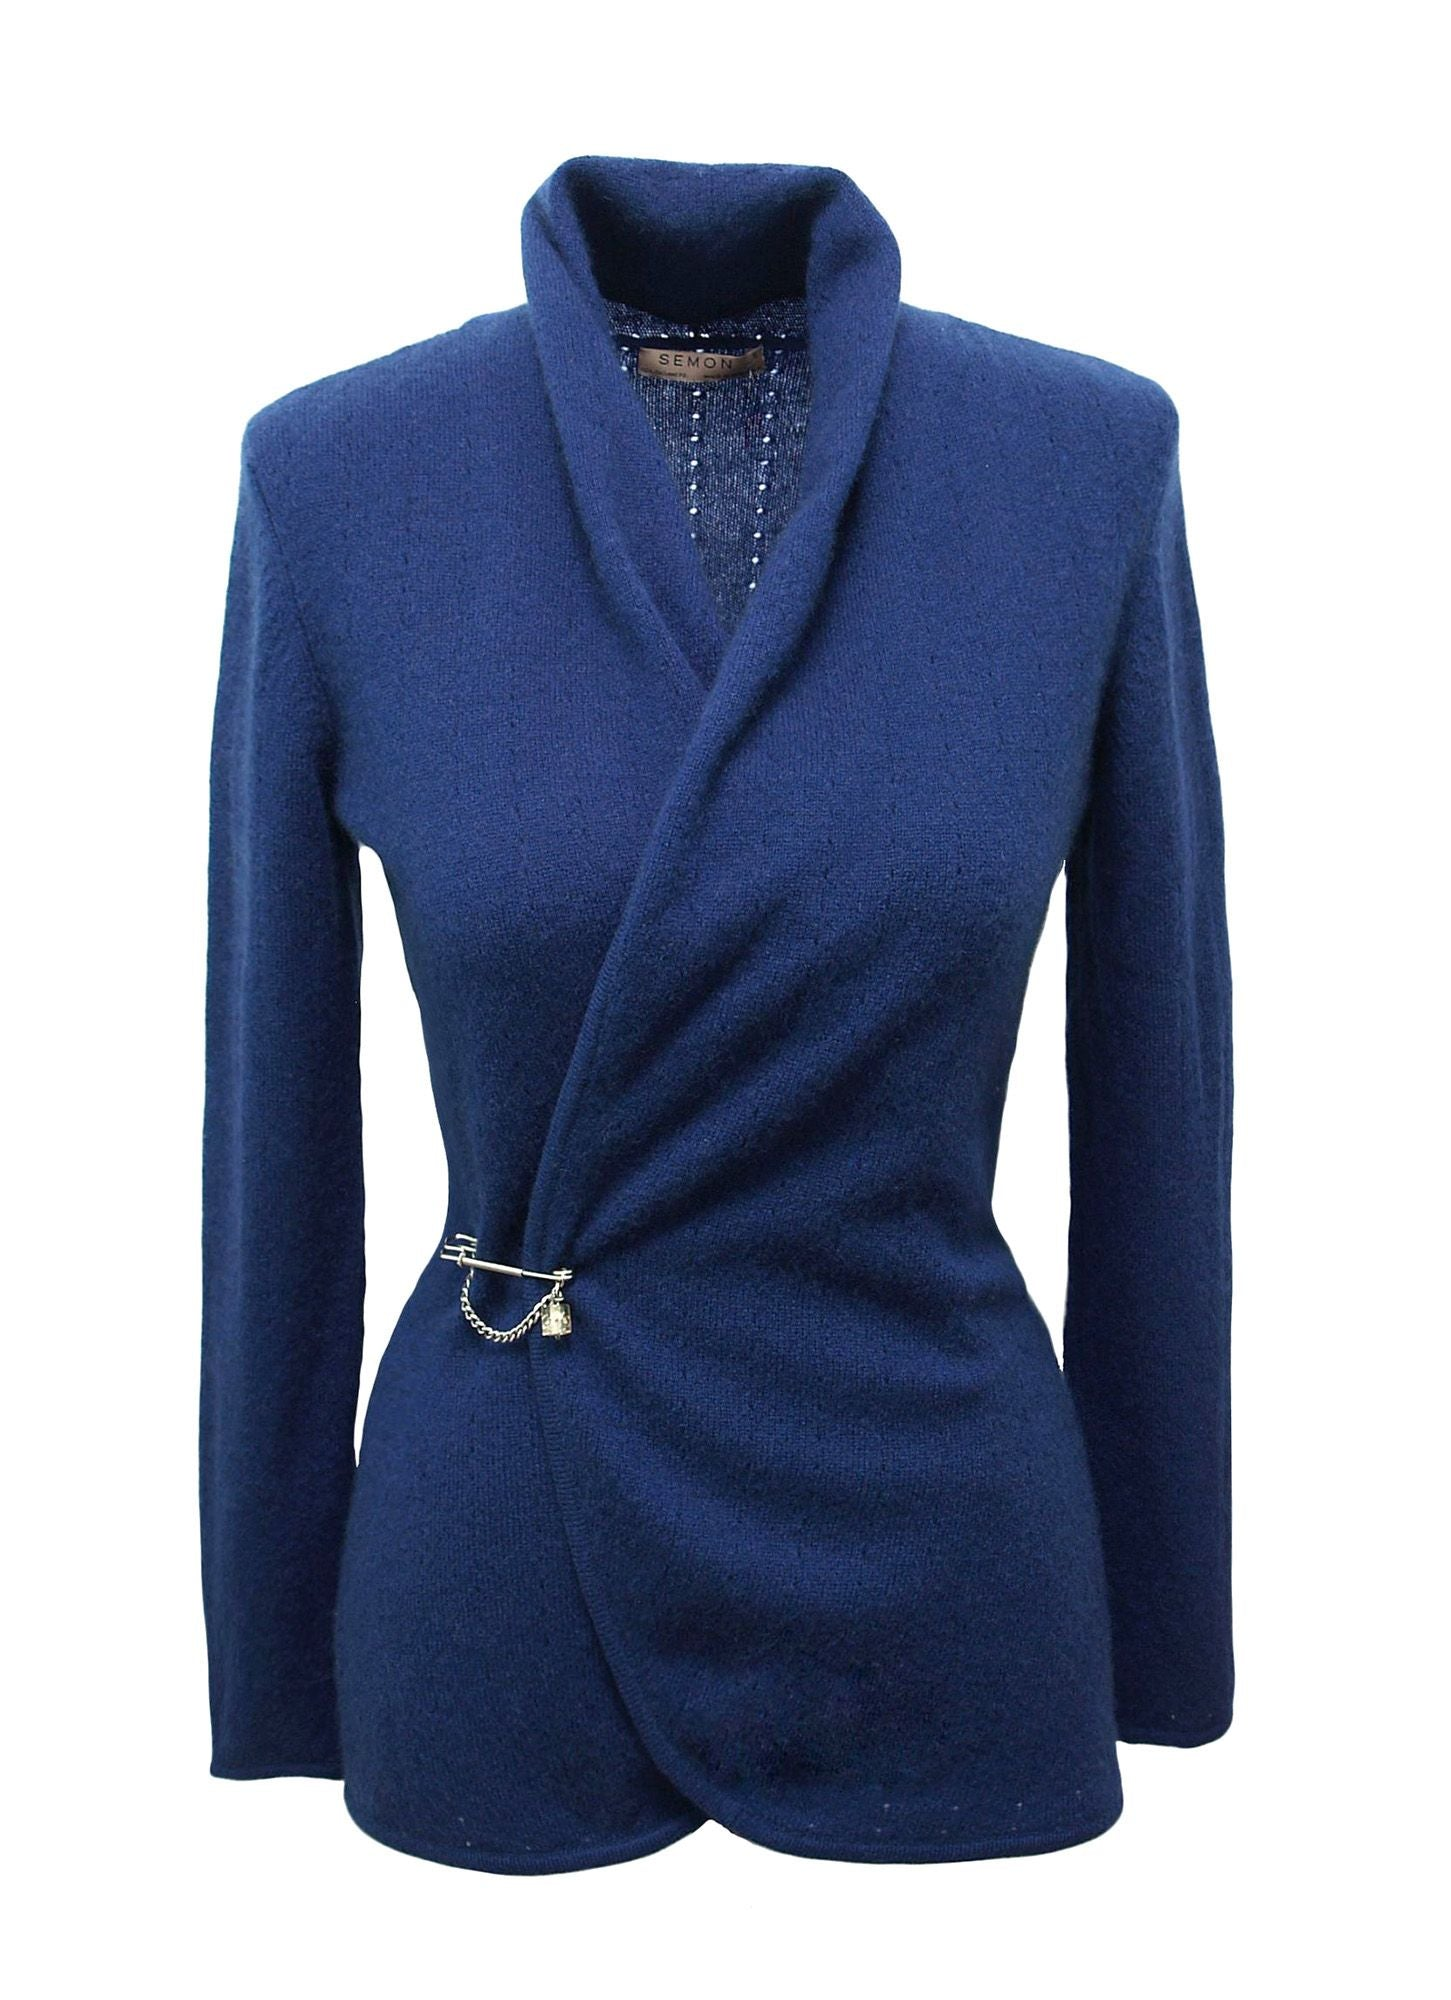 Lacy shawl neck cardigan in Mid blue